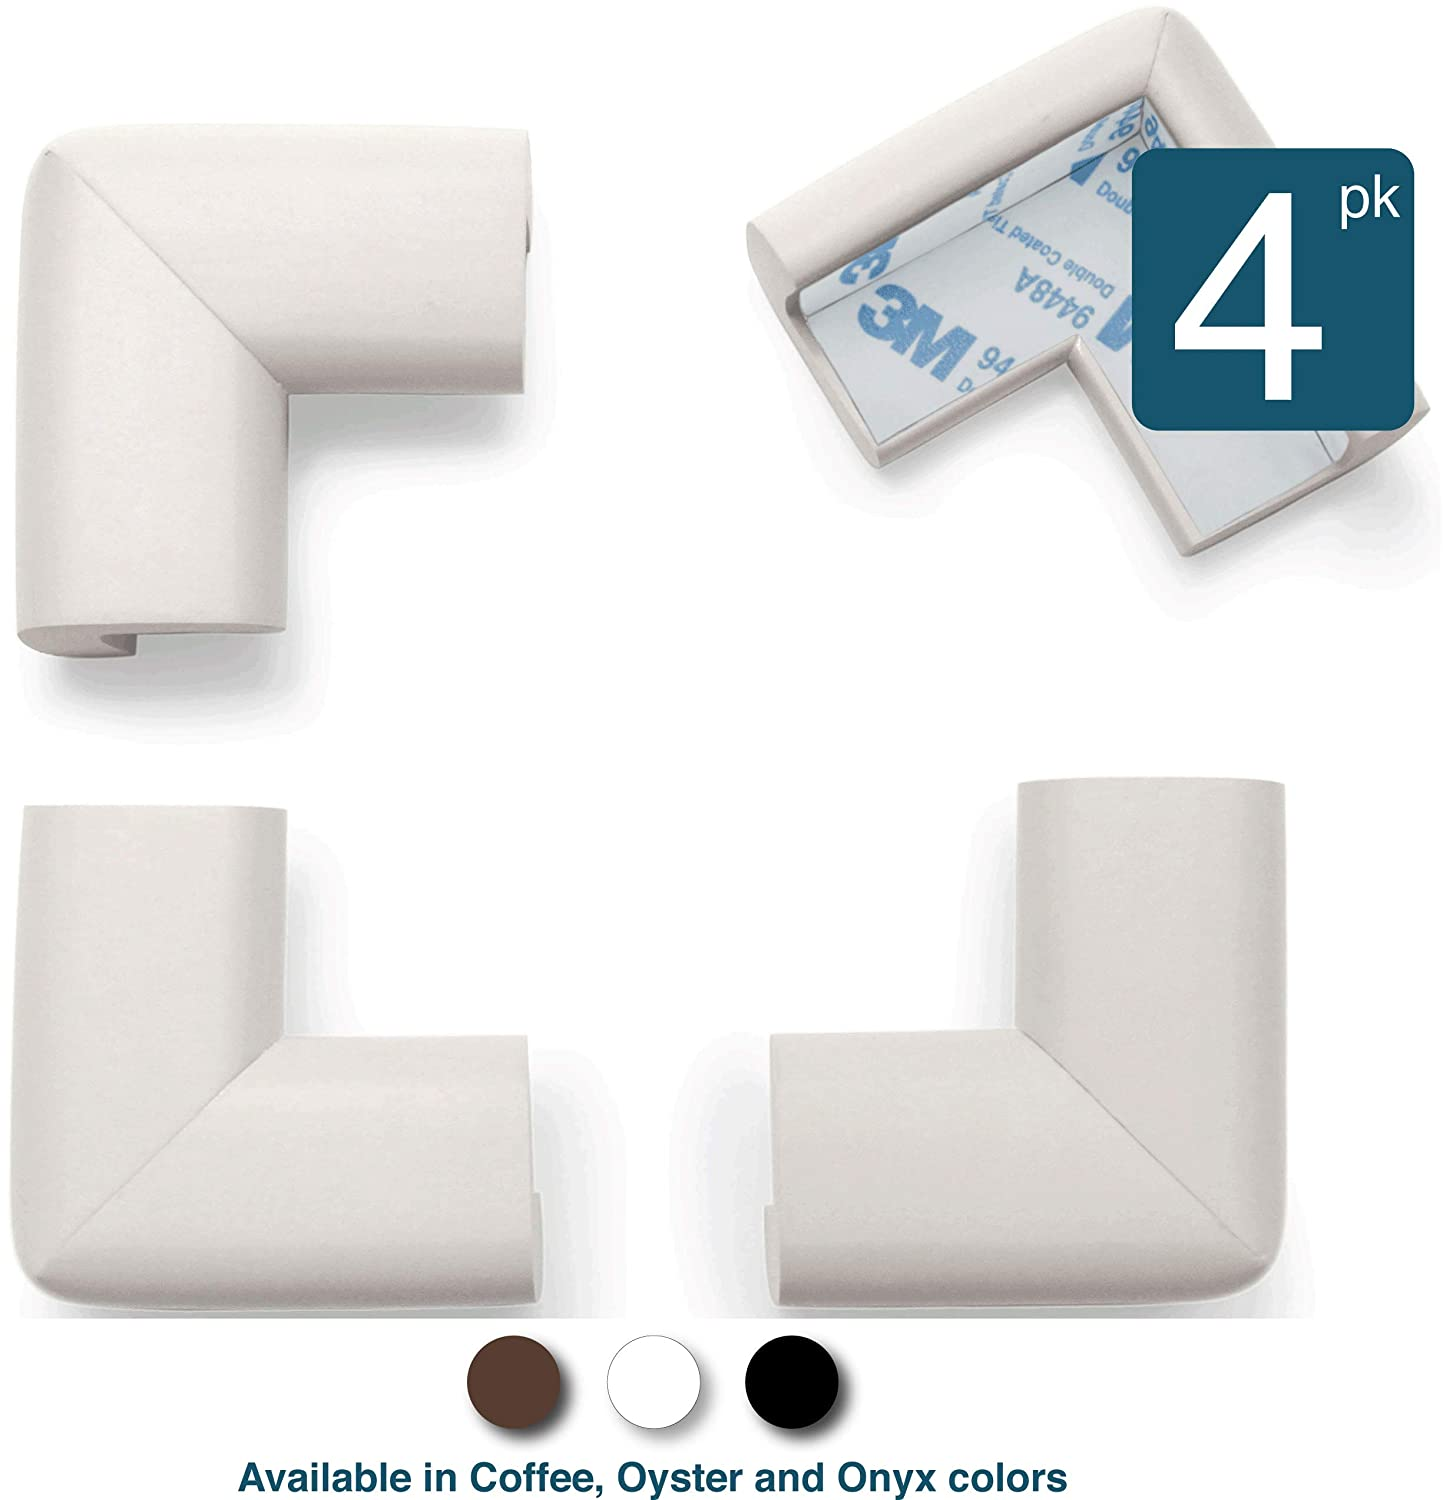 Foam Rubber Table Furniture Bumper Child Safety Safe Corner Cushion Roving Cove Soft Caring Baby Corners Baby Proofing Corner Guards Edge Protectors Brown 8-Piece Coffee Pre-Taped